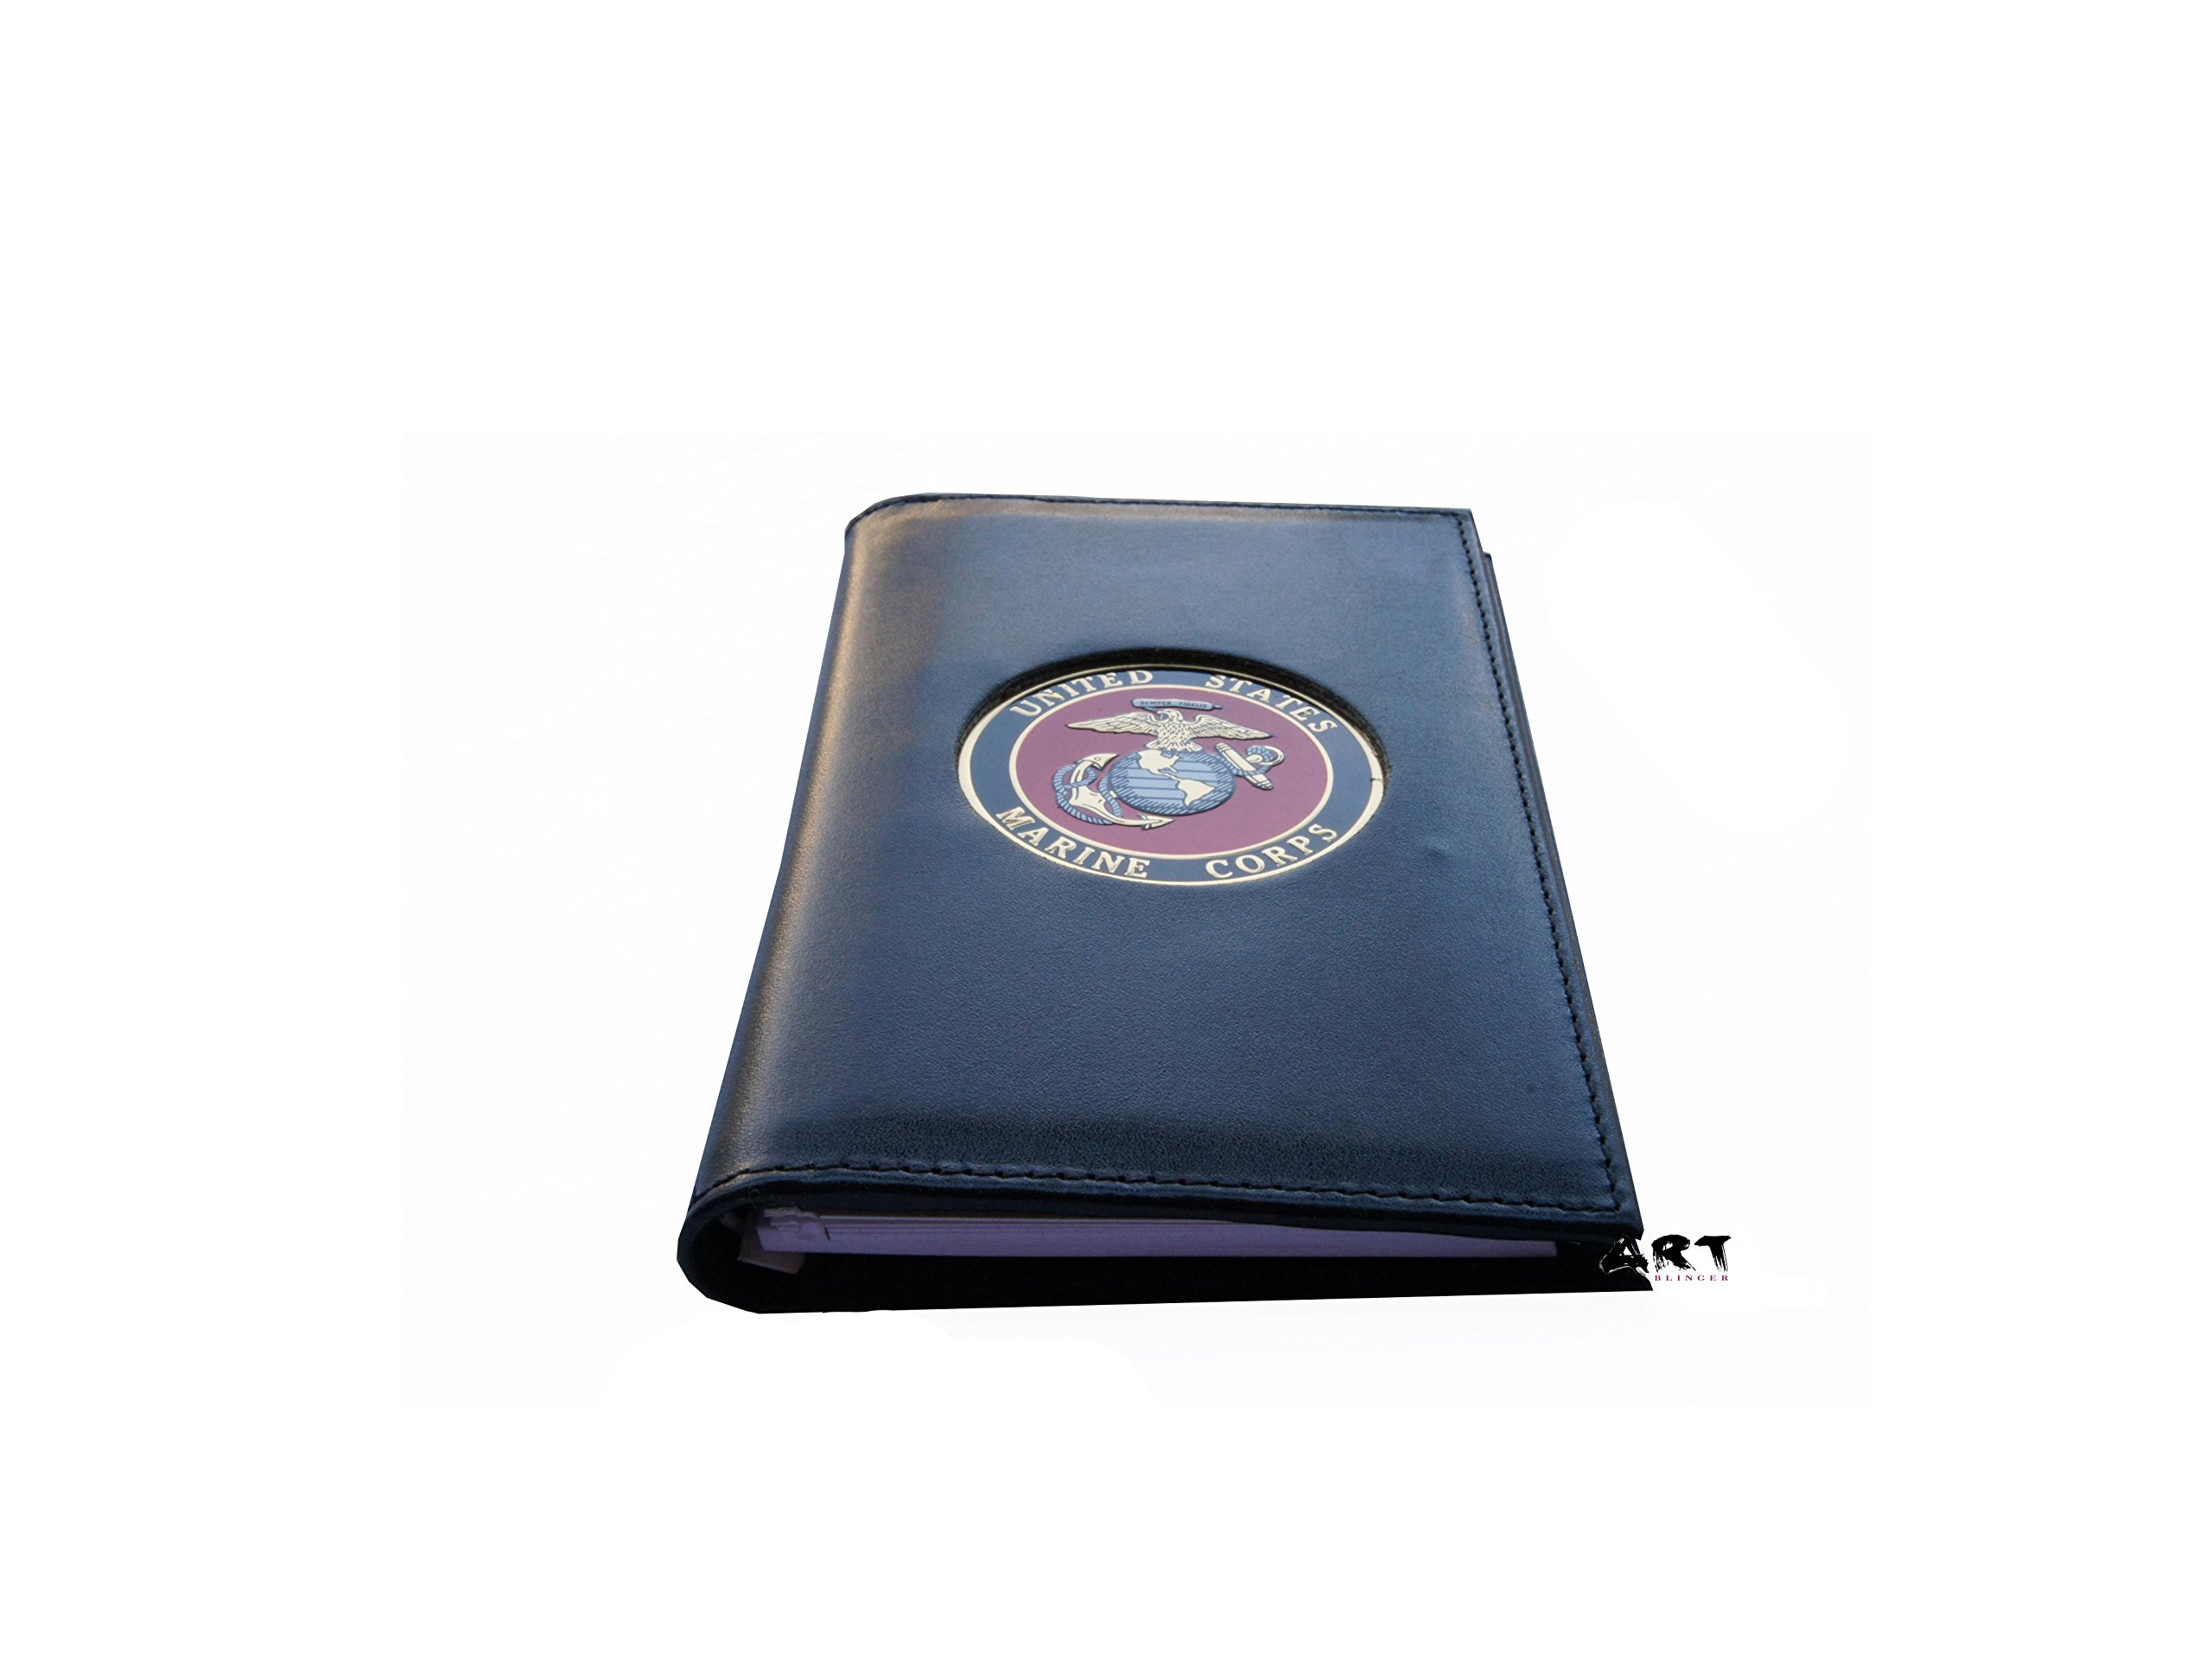 Military Sprial Notebook Cover, US MARINE CORPS Padfolio with Medallion - 3 x 5